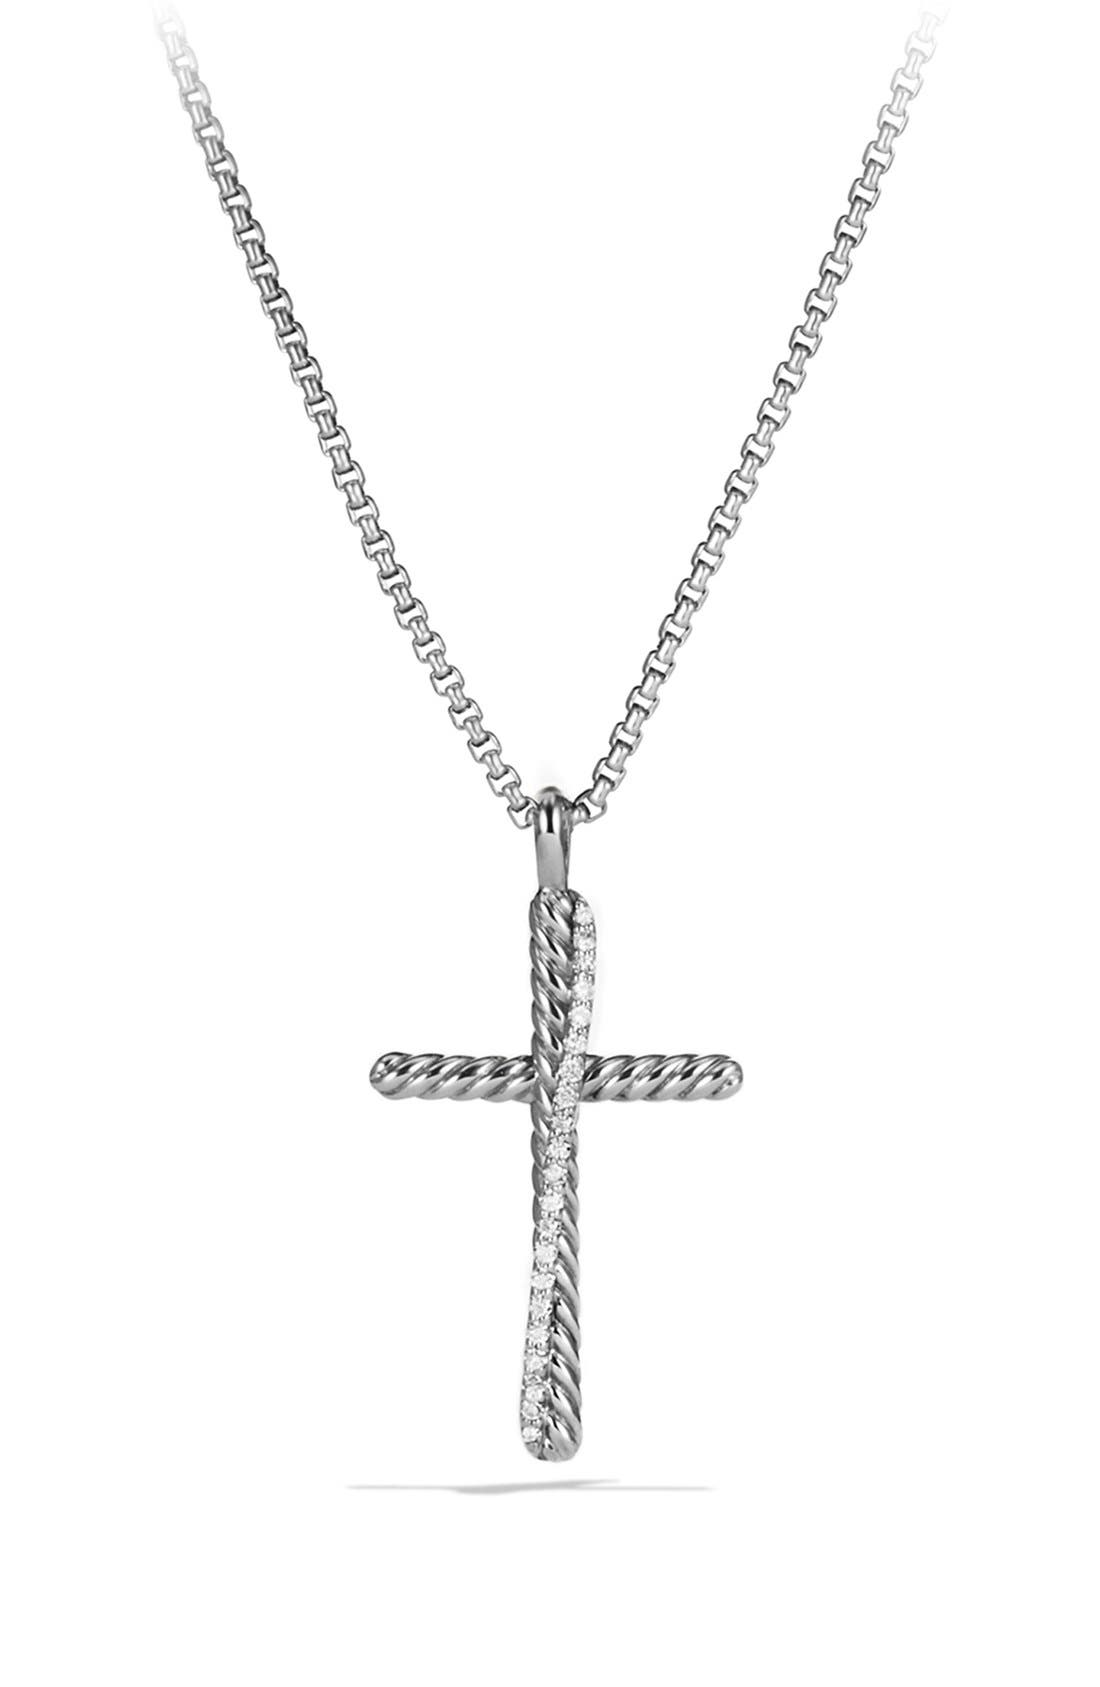 David Yurman 'Crossover' Cross Necklace